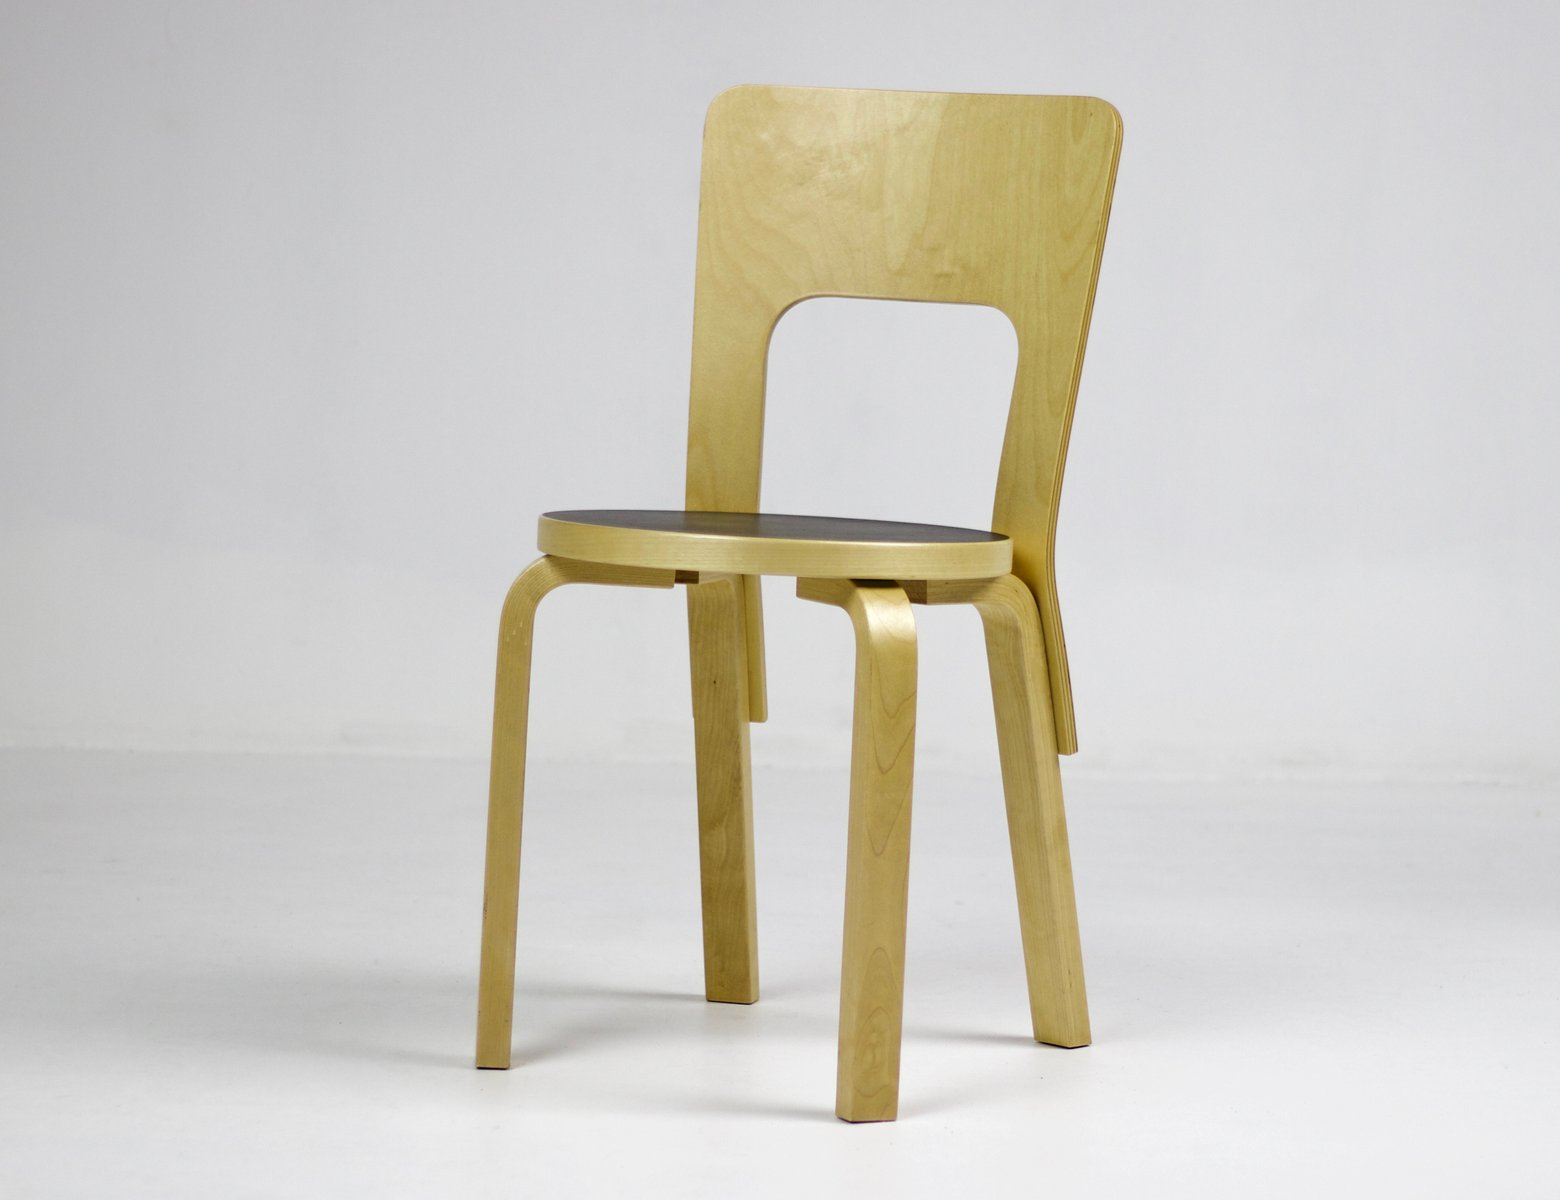 alvar aalto furniture. Vintage Model 66 Chair By Alvar Aalto For Artek Furniture